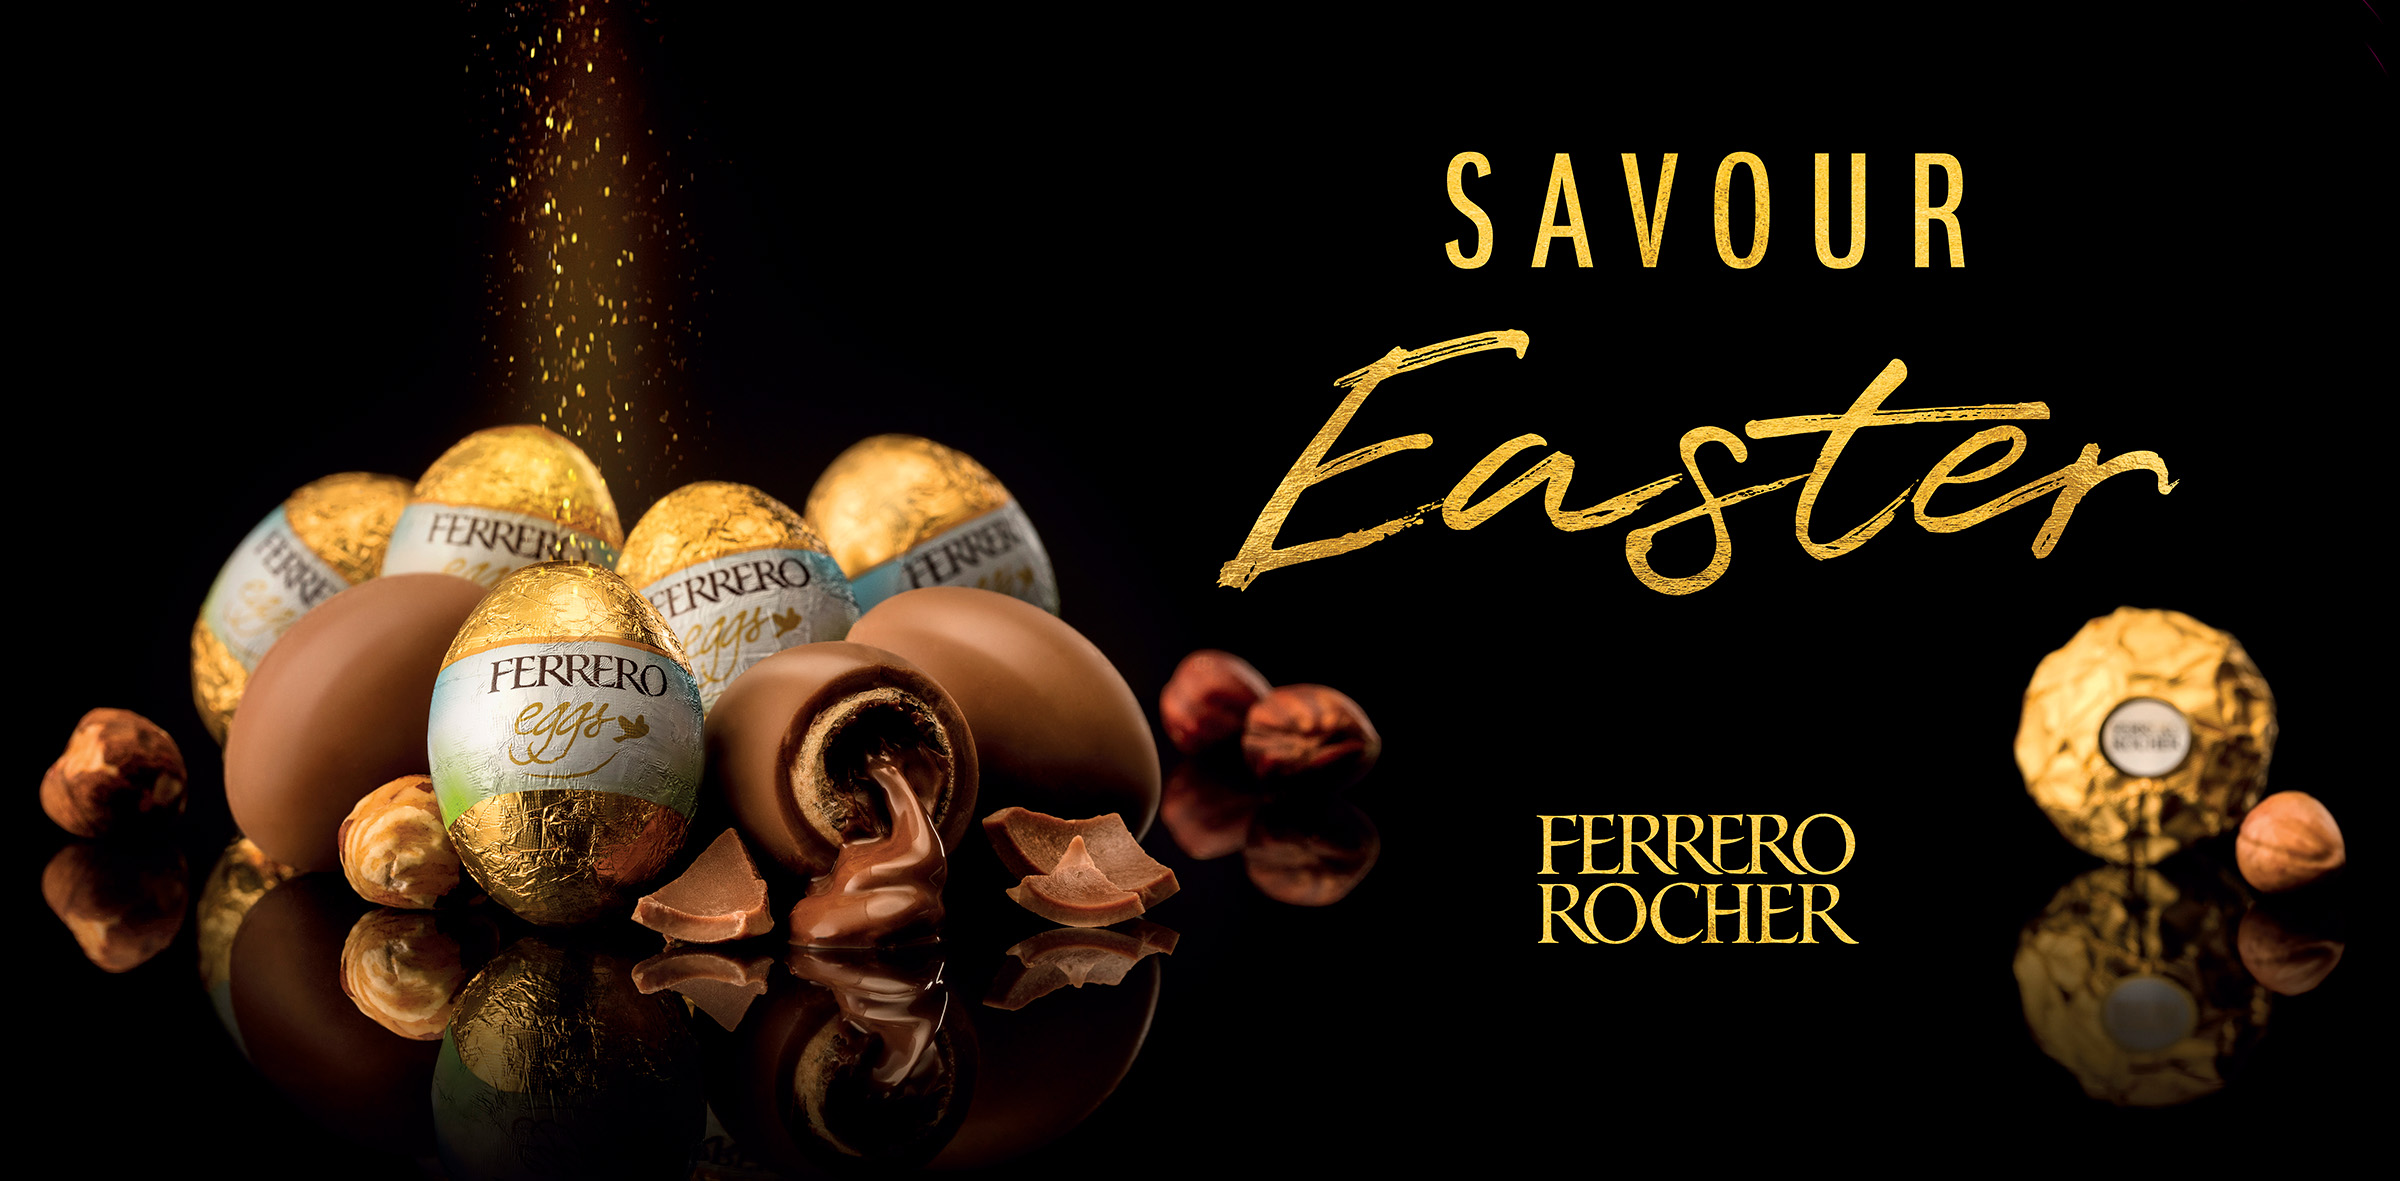 Advertising studio product food photography for Ferrero Rocher of easter eggs